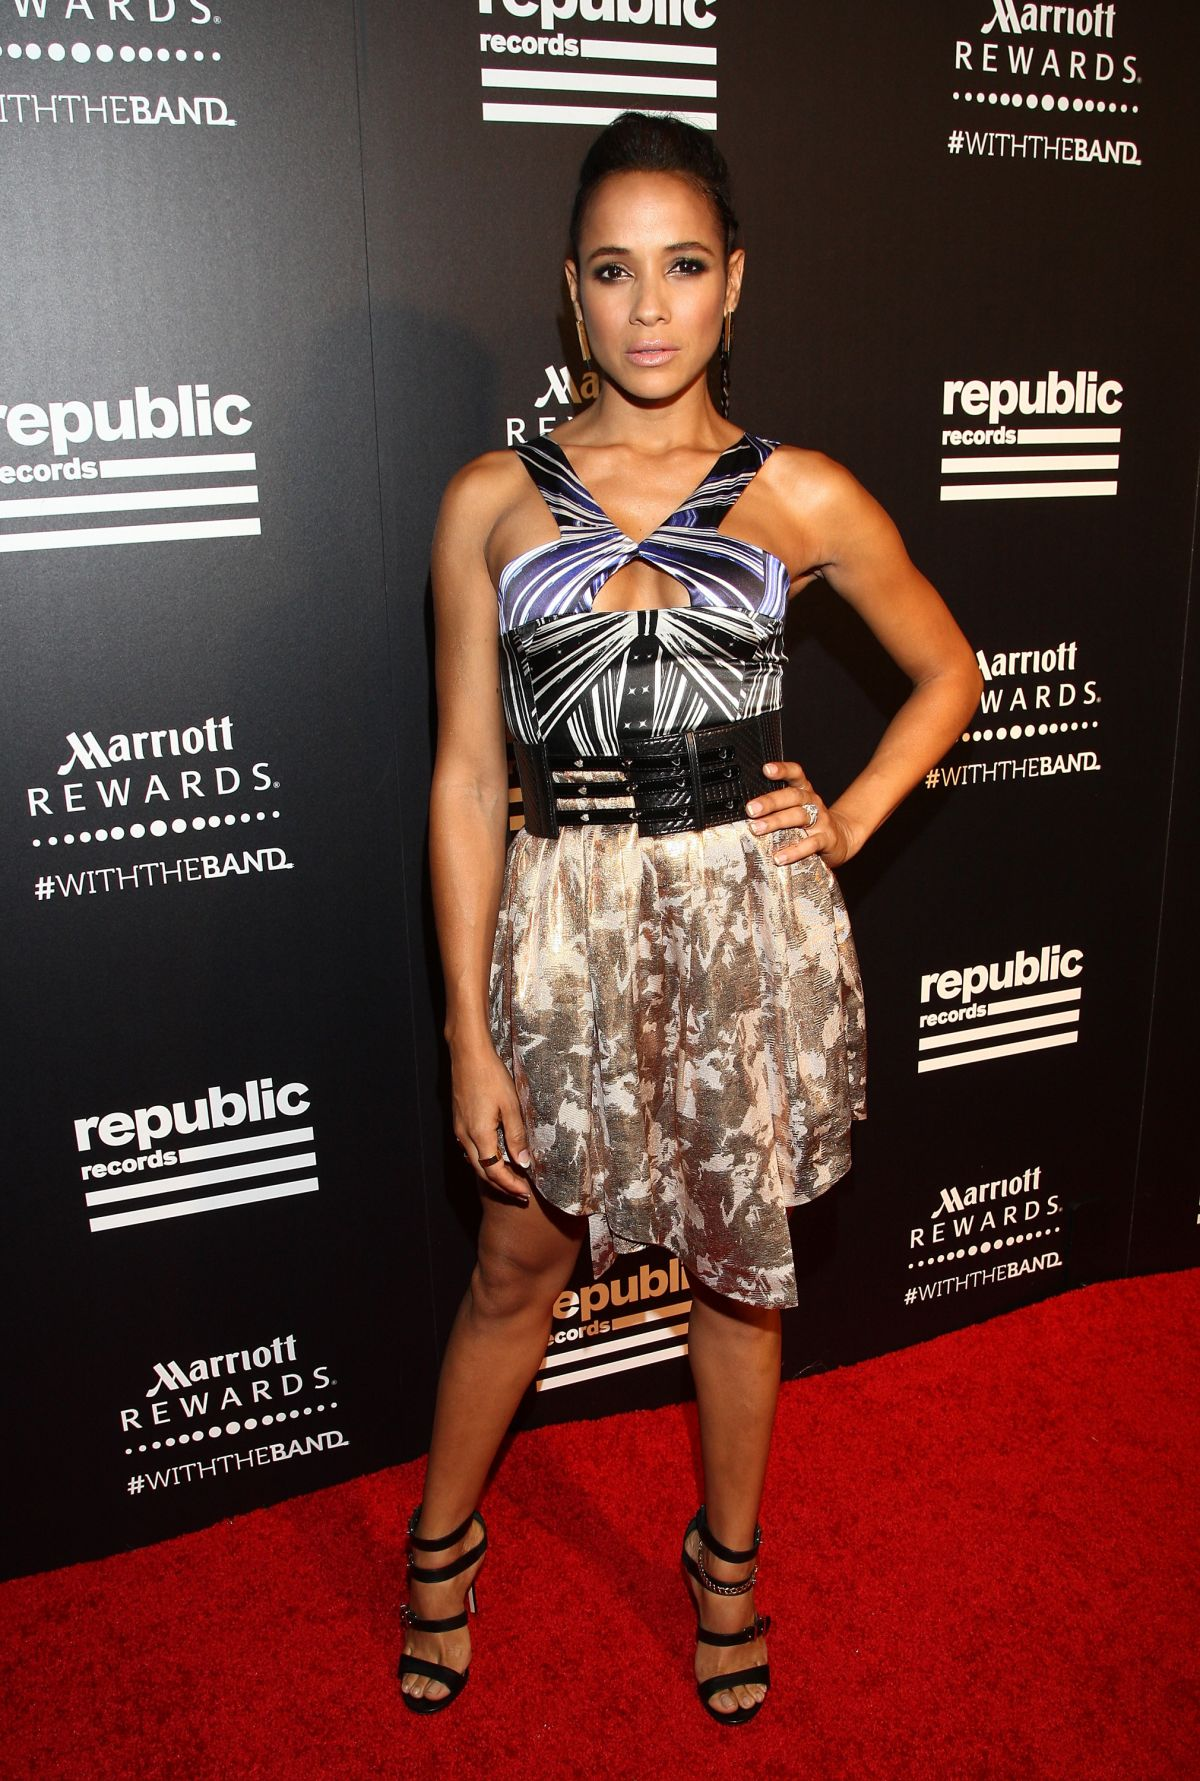 DANIA RAMIREZ at Rpublic Records VMA After-party in West Hollywood